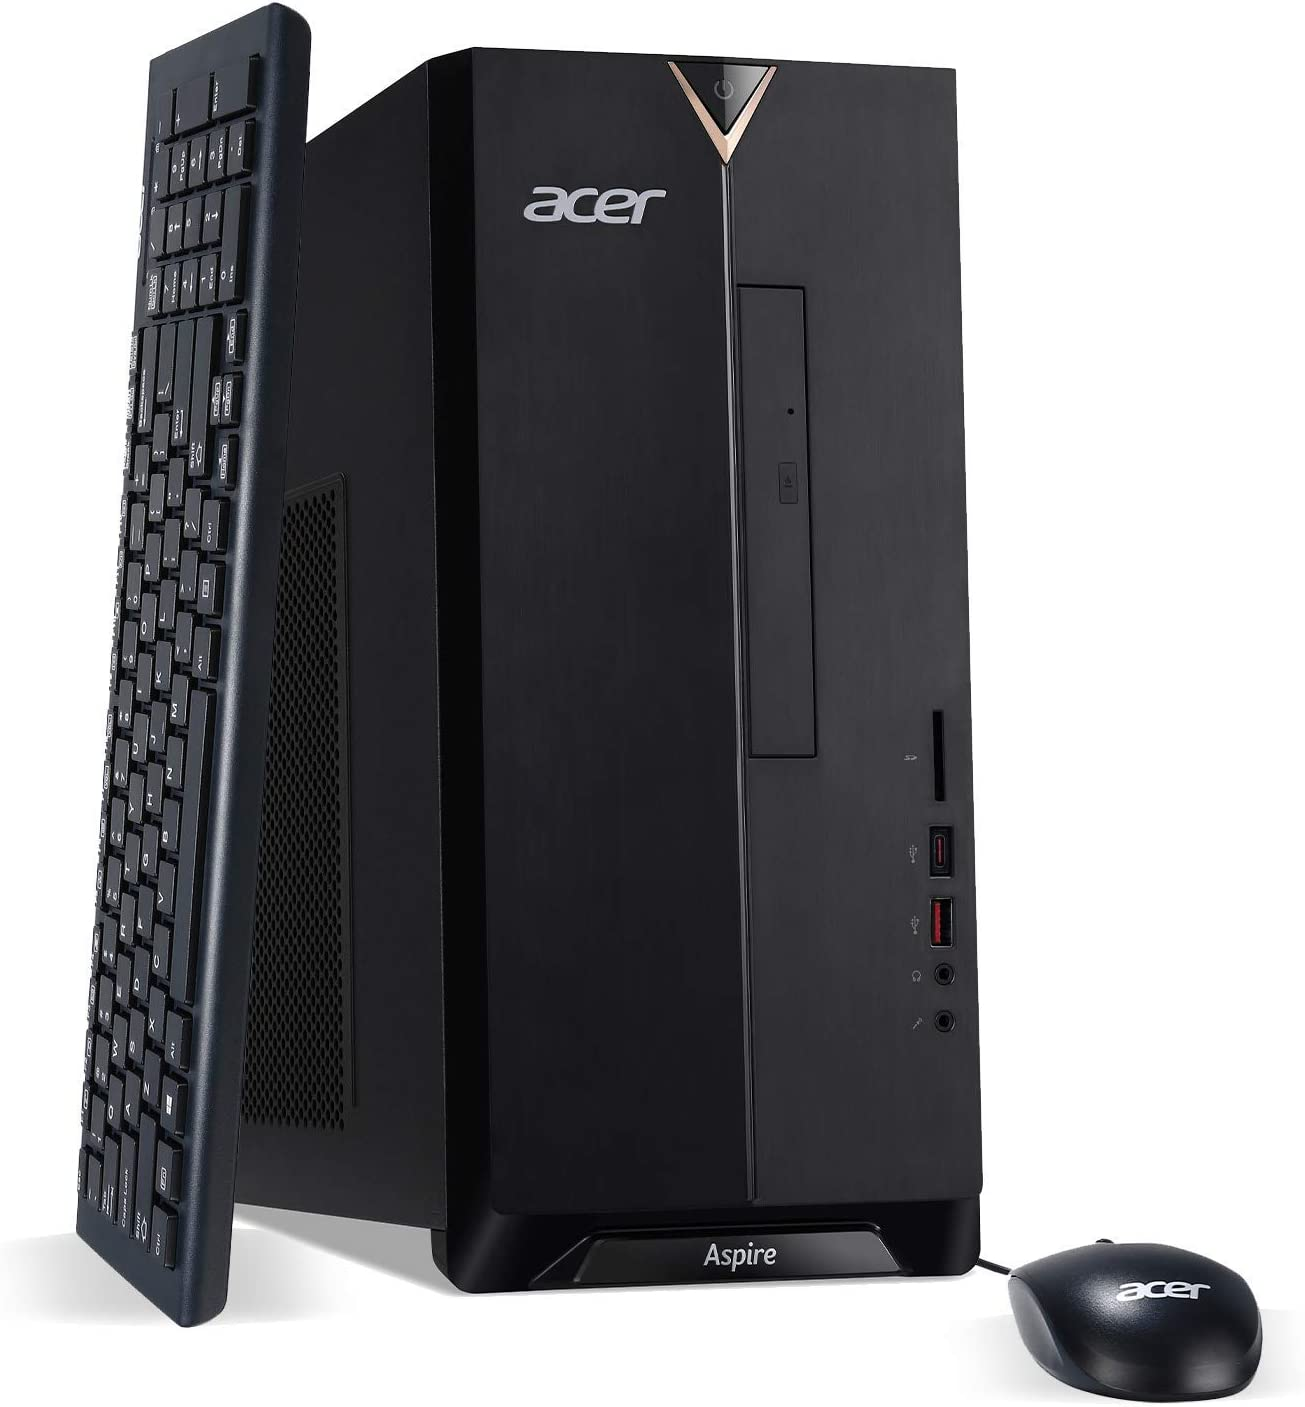 Acer Aspire TC-885-ACCFLi5O Desktop, 8th Gen Intel Core i5-8400, 8GB DDR4 + 16GB Optane Memory, 2TB HDD, 8X DVD, 802.11ac WiFi, Windows 10 Home